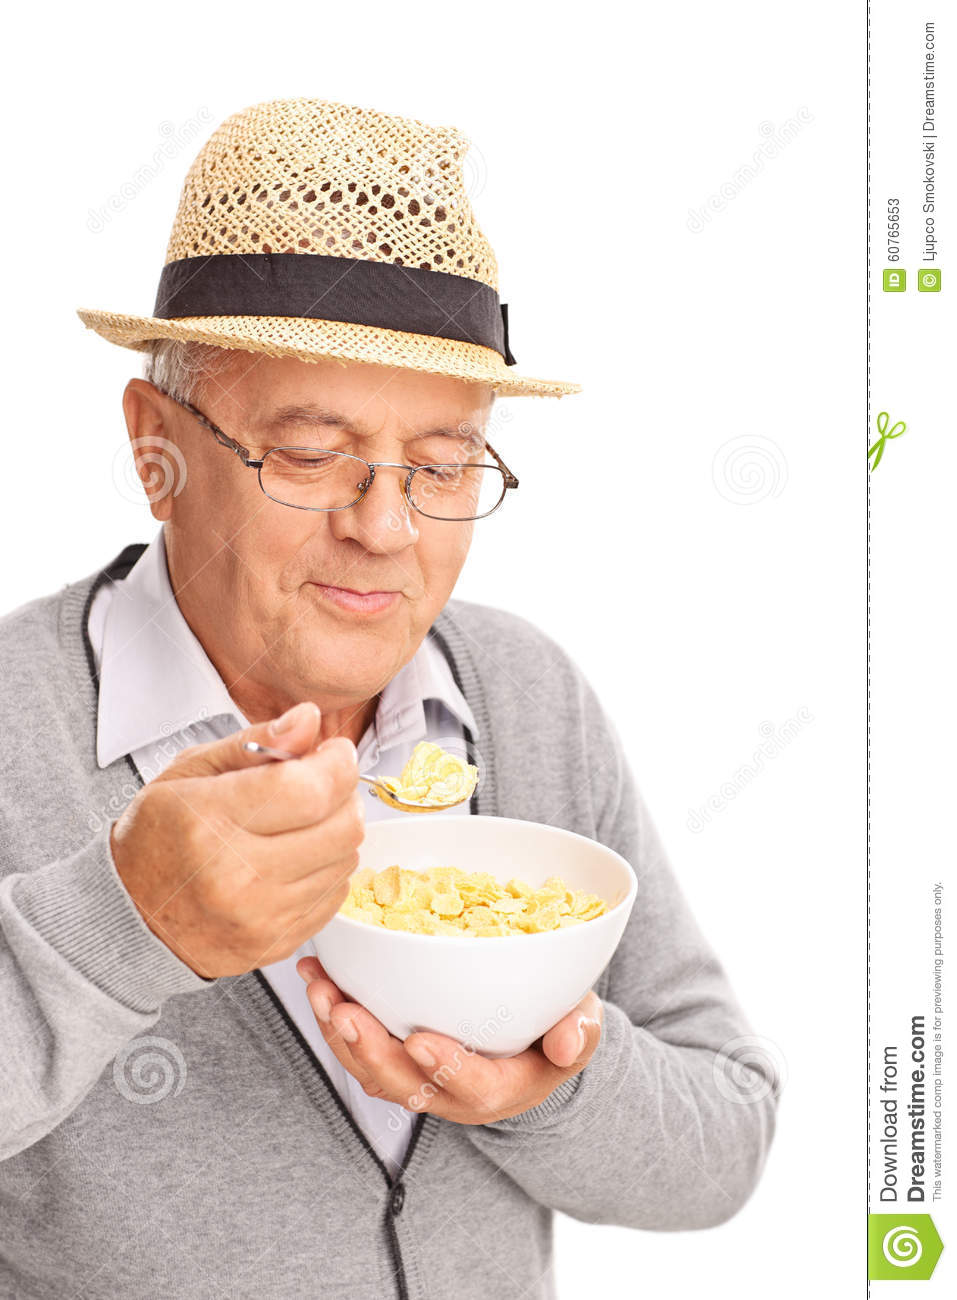 Senior man eating cereal with a metal spoon